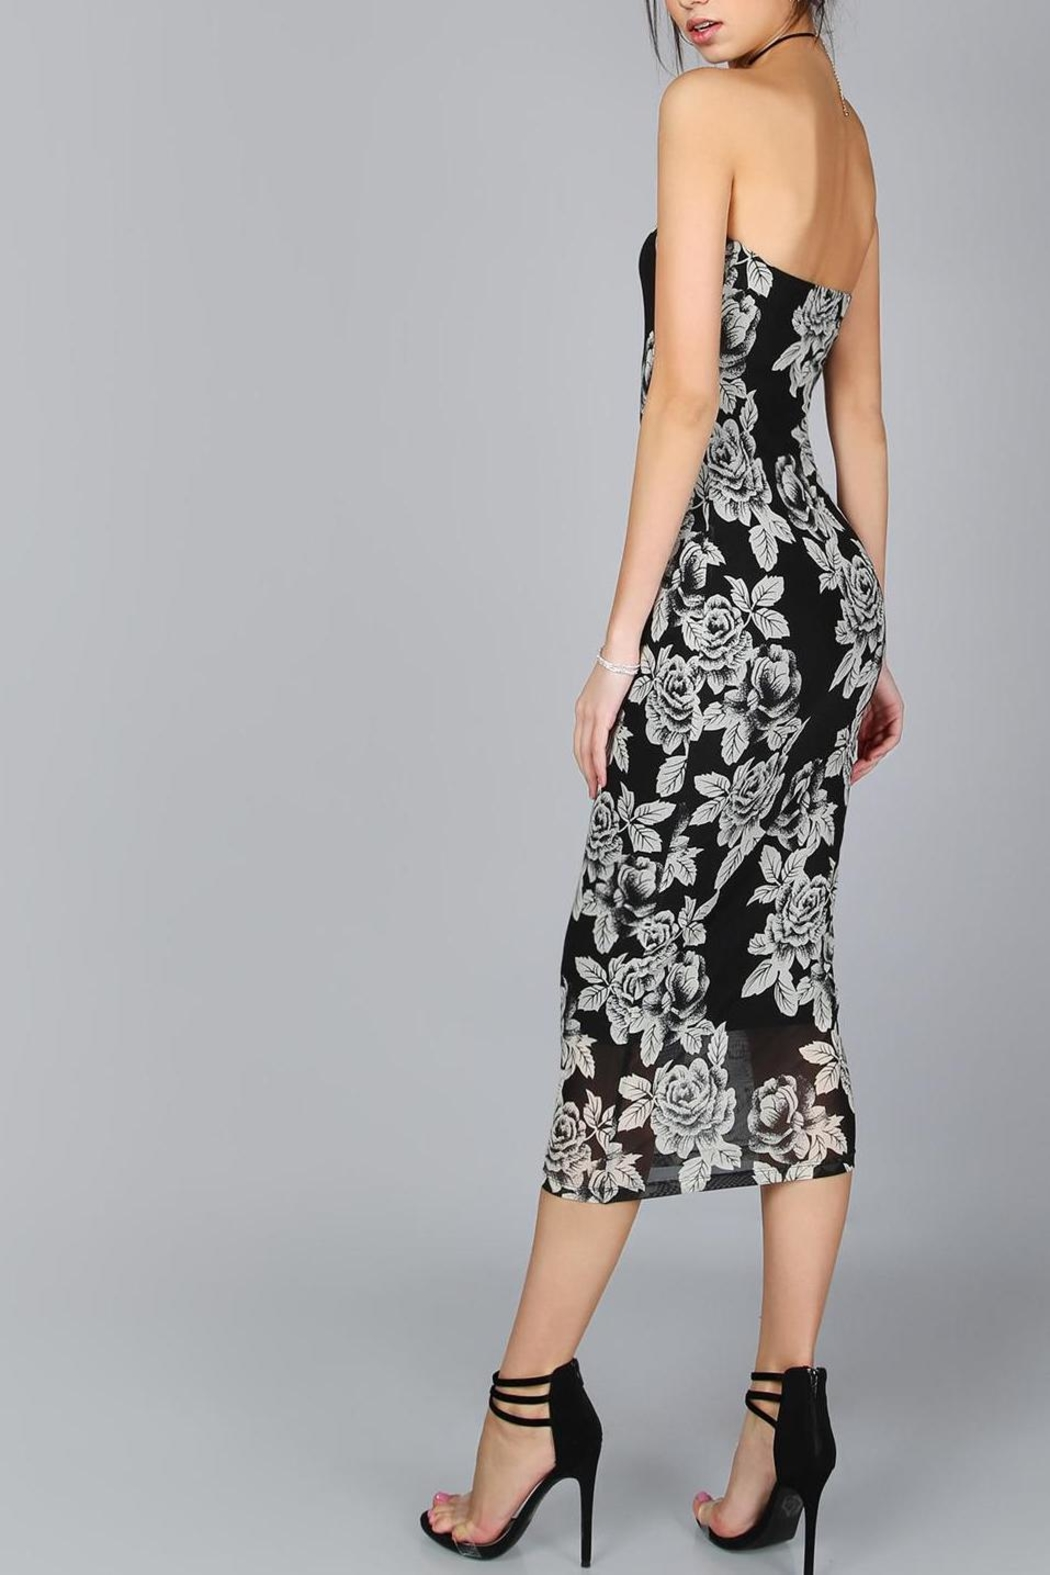 House of Atelier Flower Midi Dress - Side Cropped Image